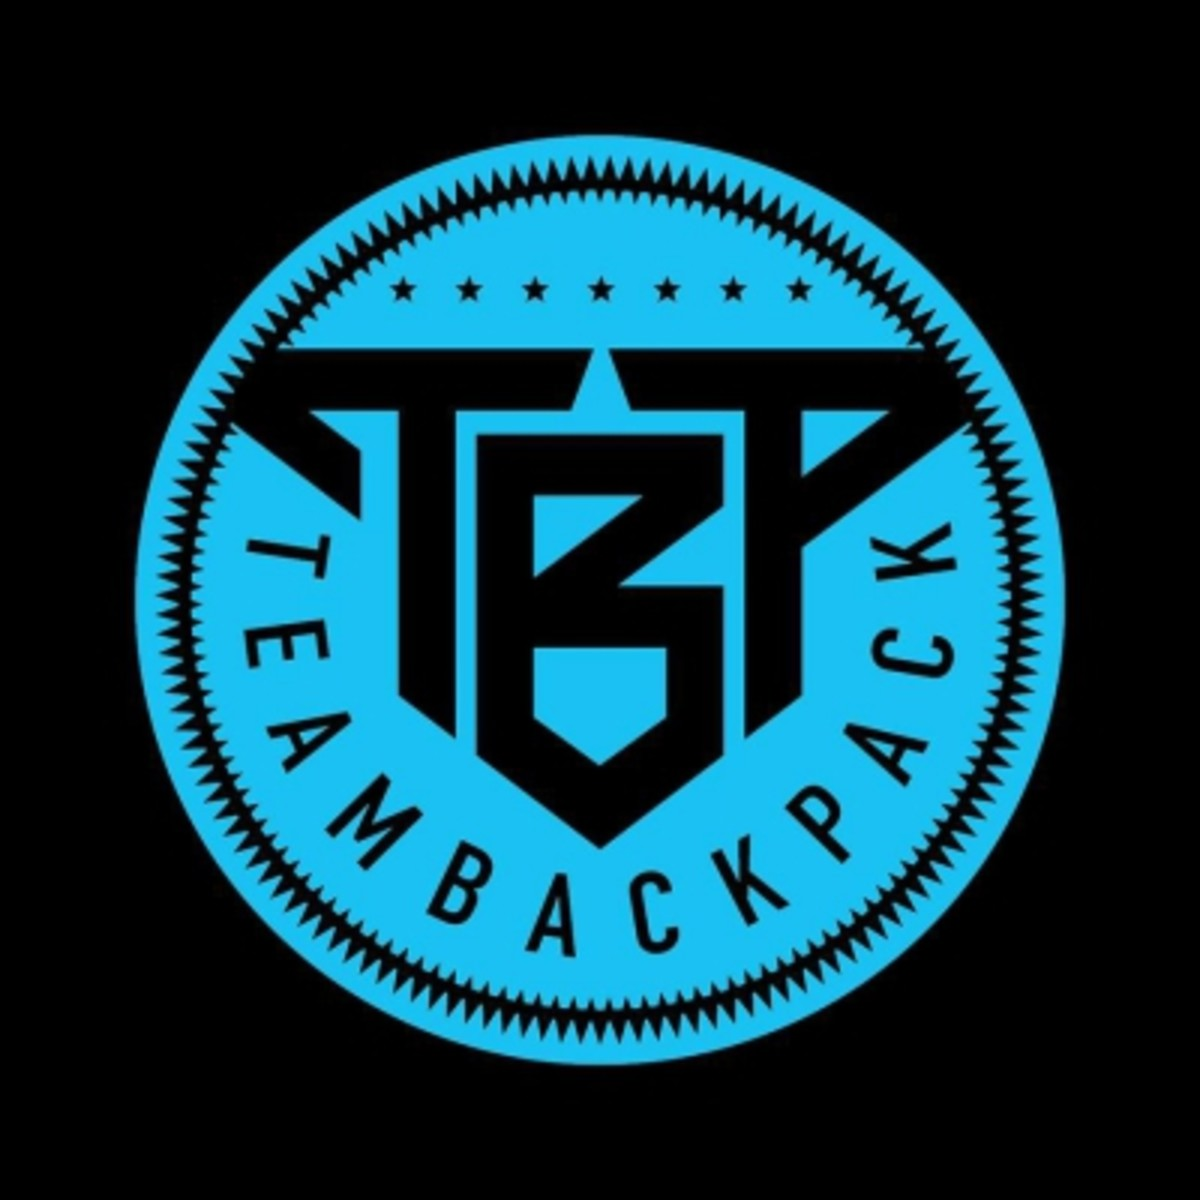 teambackpack.jpg